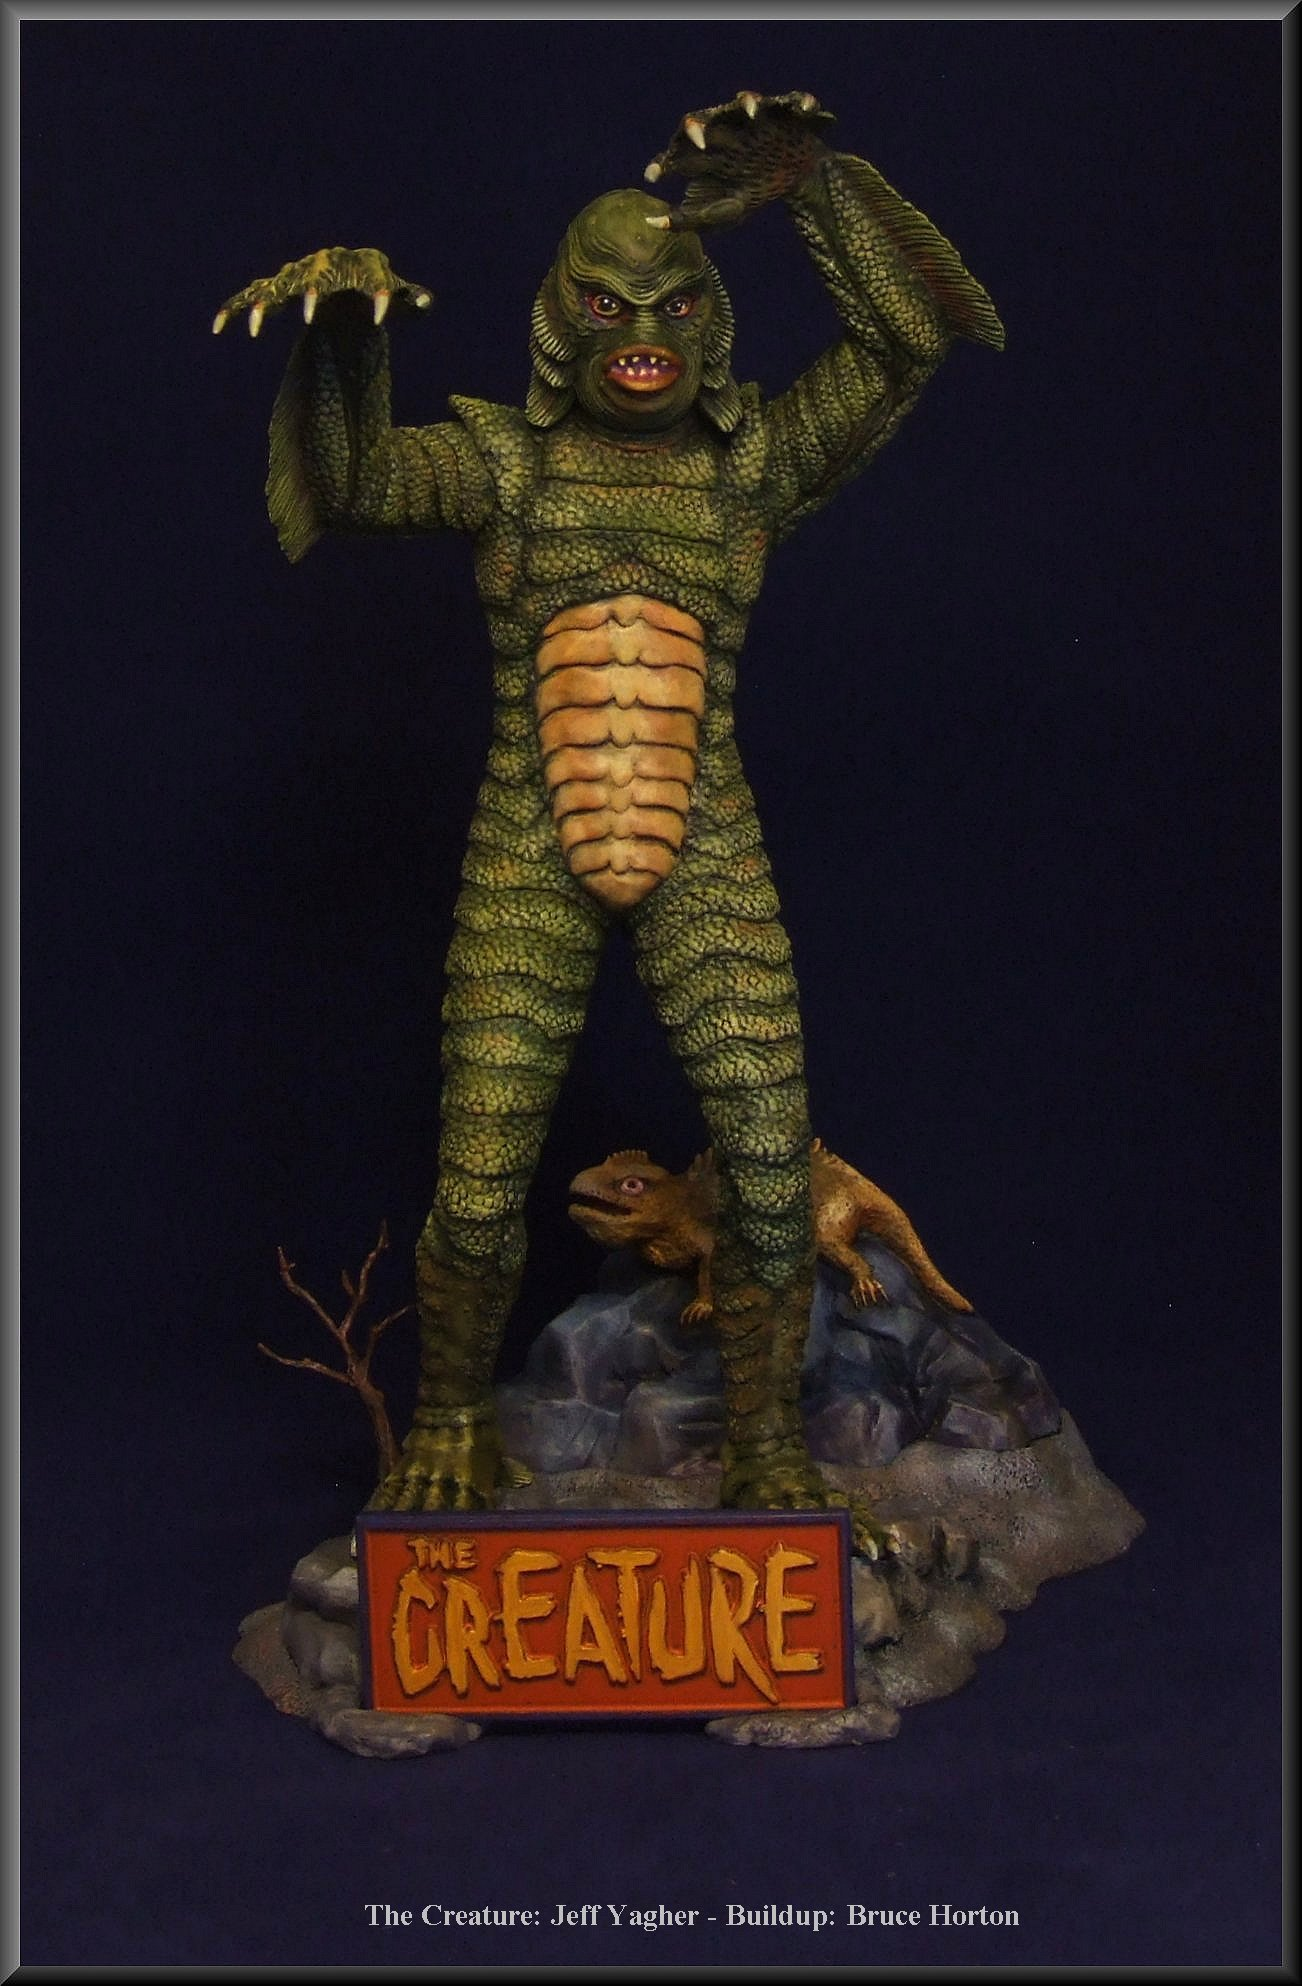 Creature-tribute-1.jpg?1548172810613